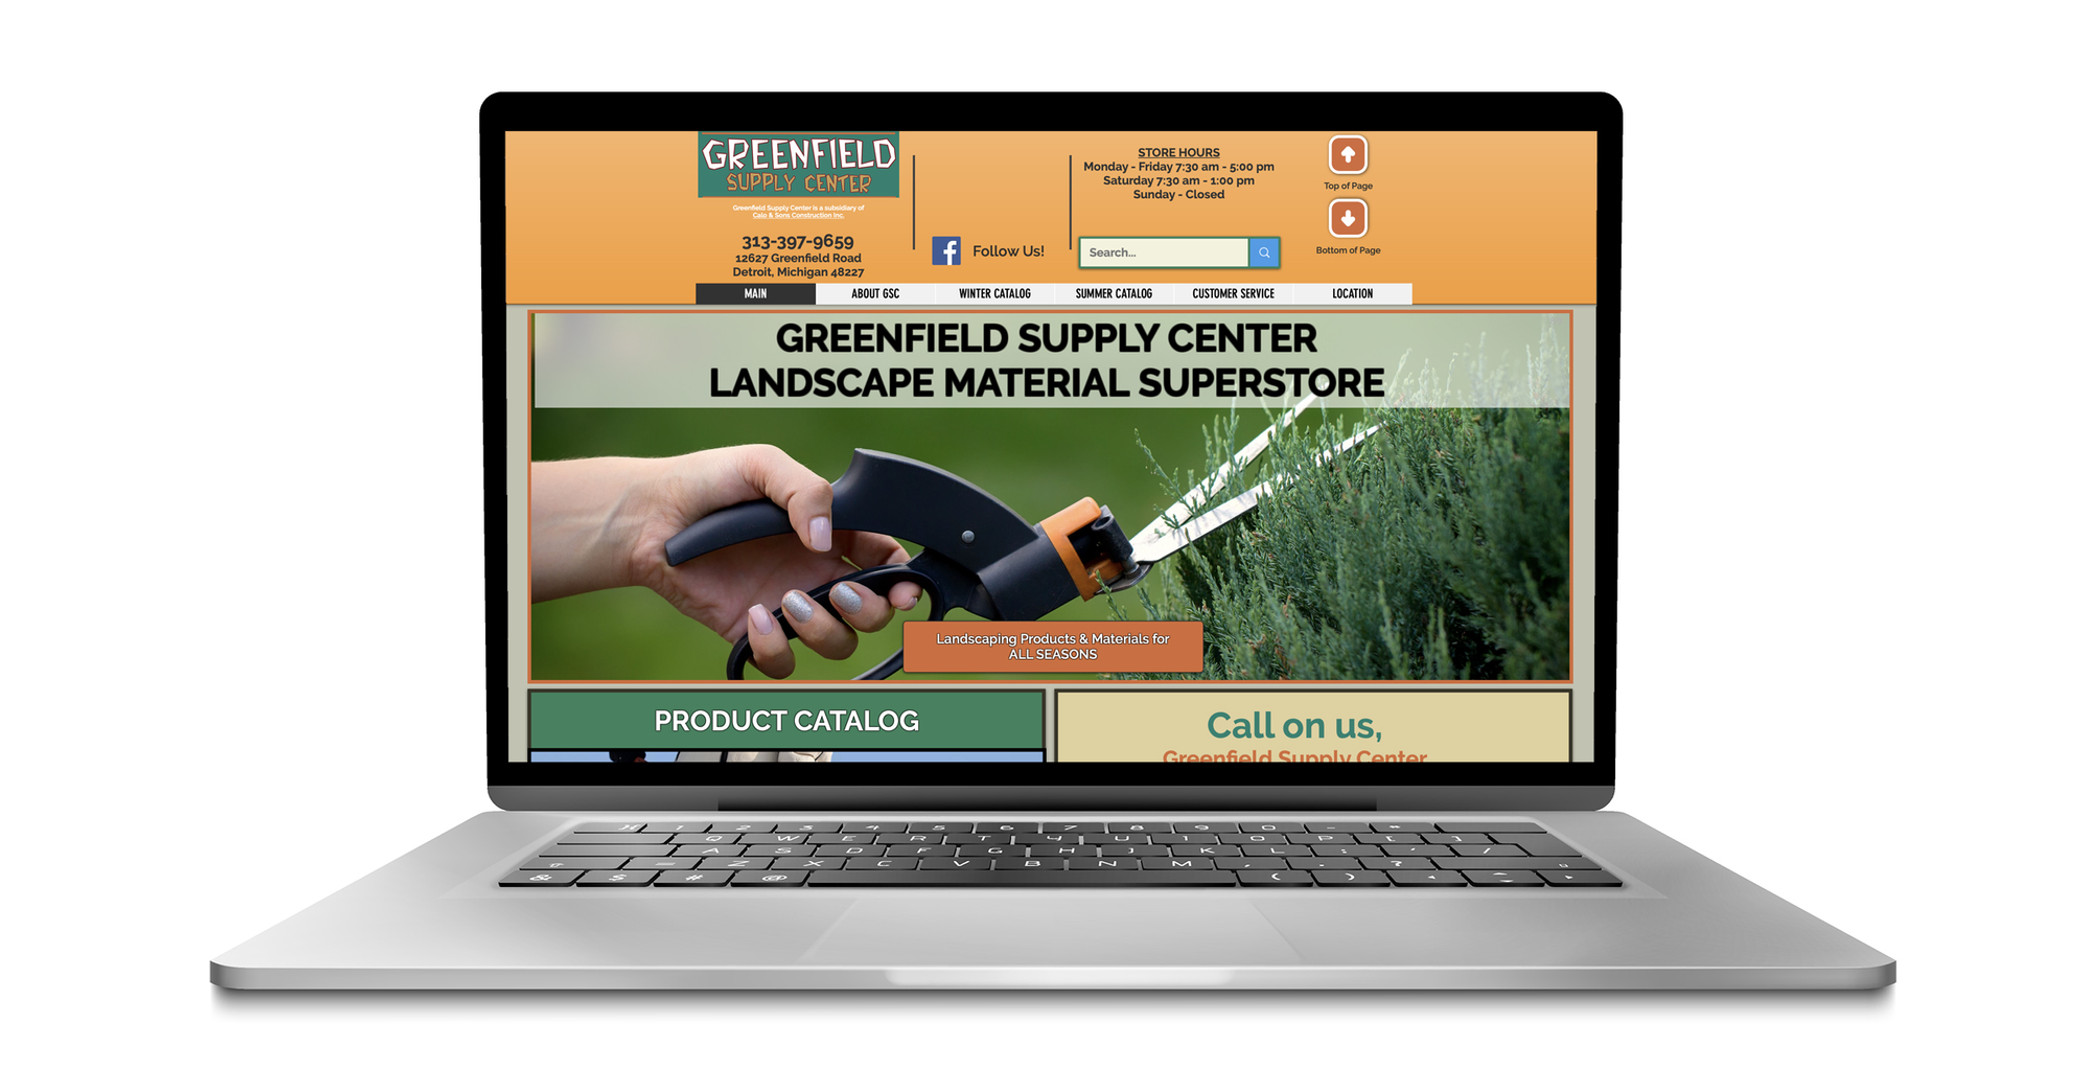 Greenfield Supply Center